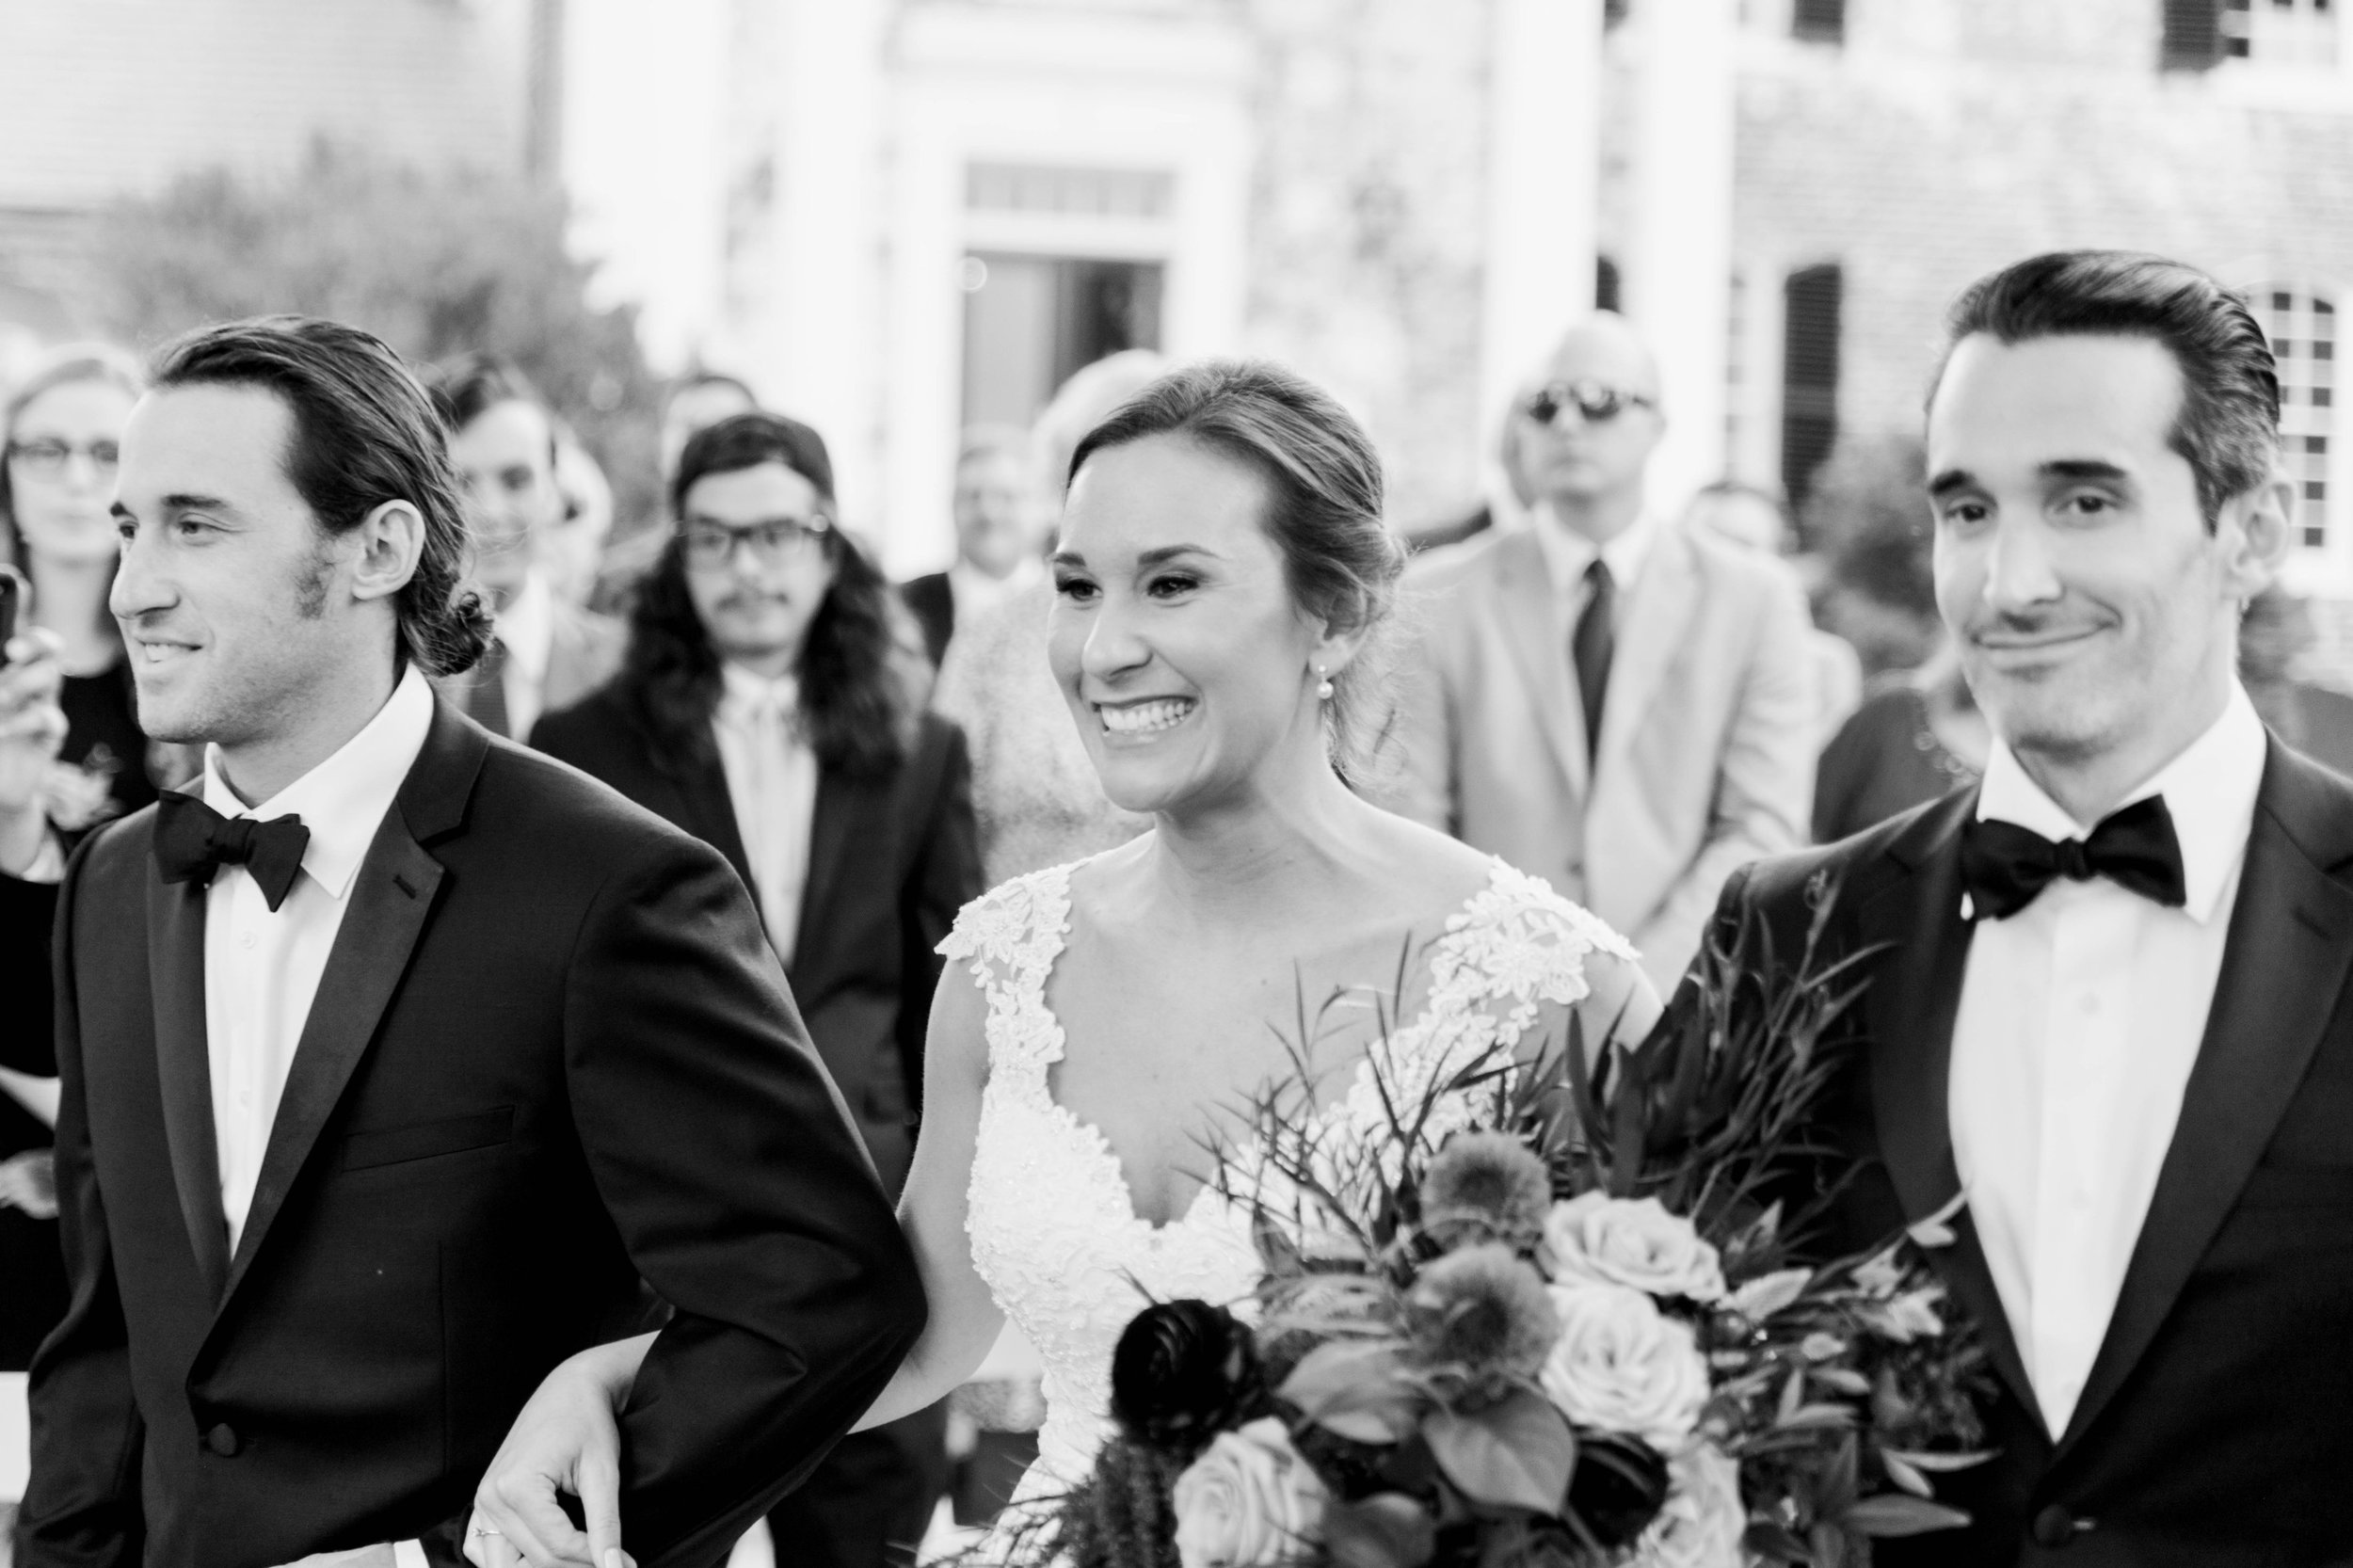 Gordan+Lauren_BoonsboroCountryClubWedding_Virginiaweddingphotographer_LynchburgVi 47.jpg